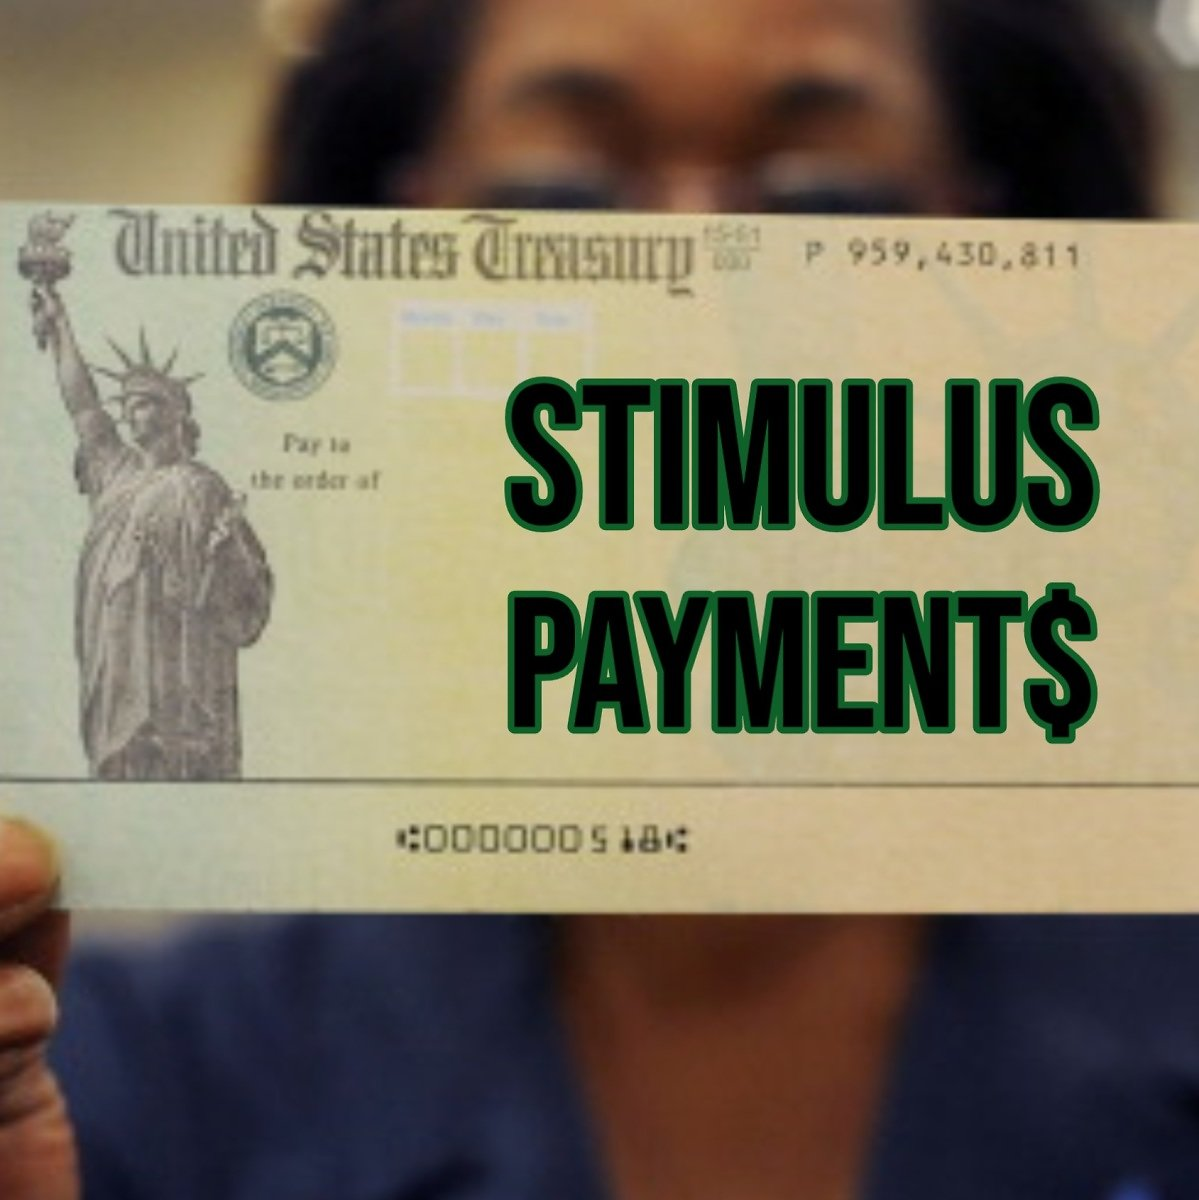 When Will More 'plus-up' Payments Arrive?